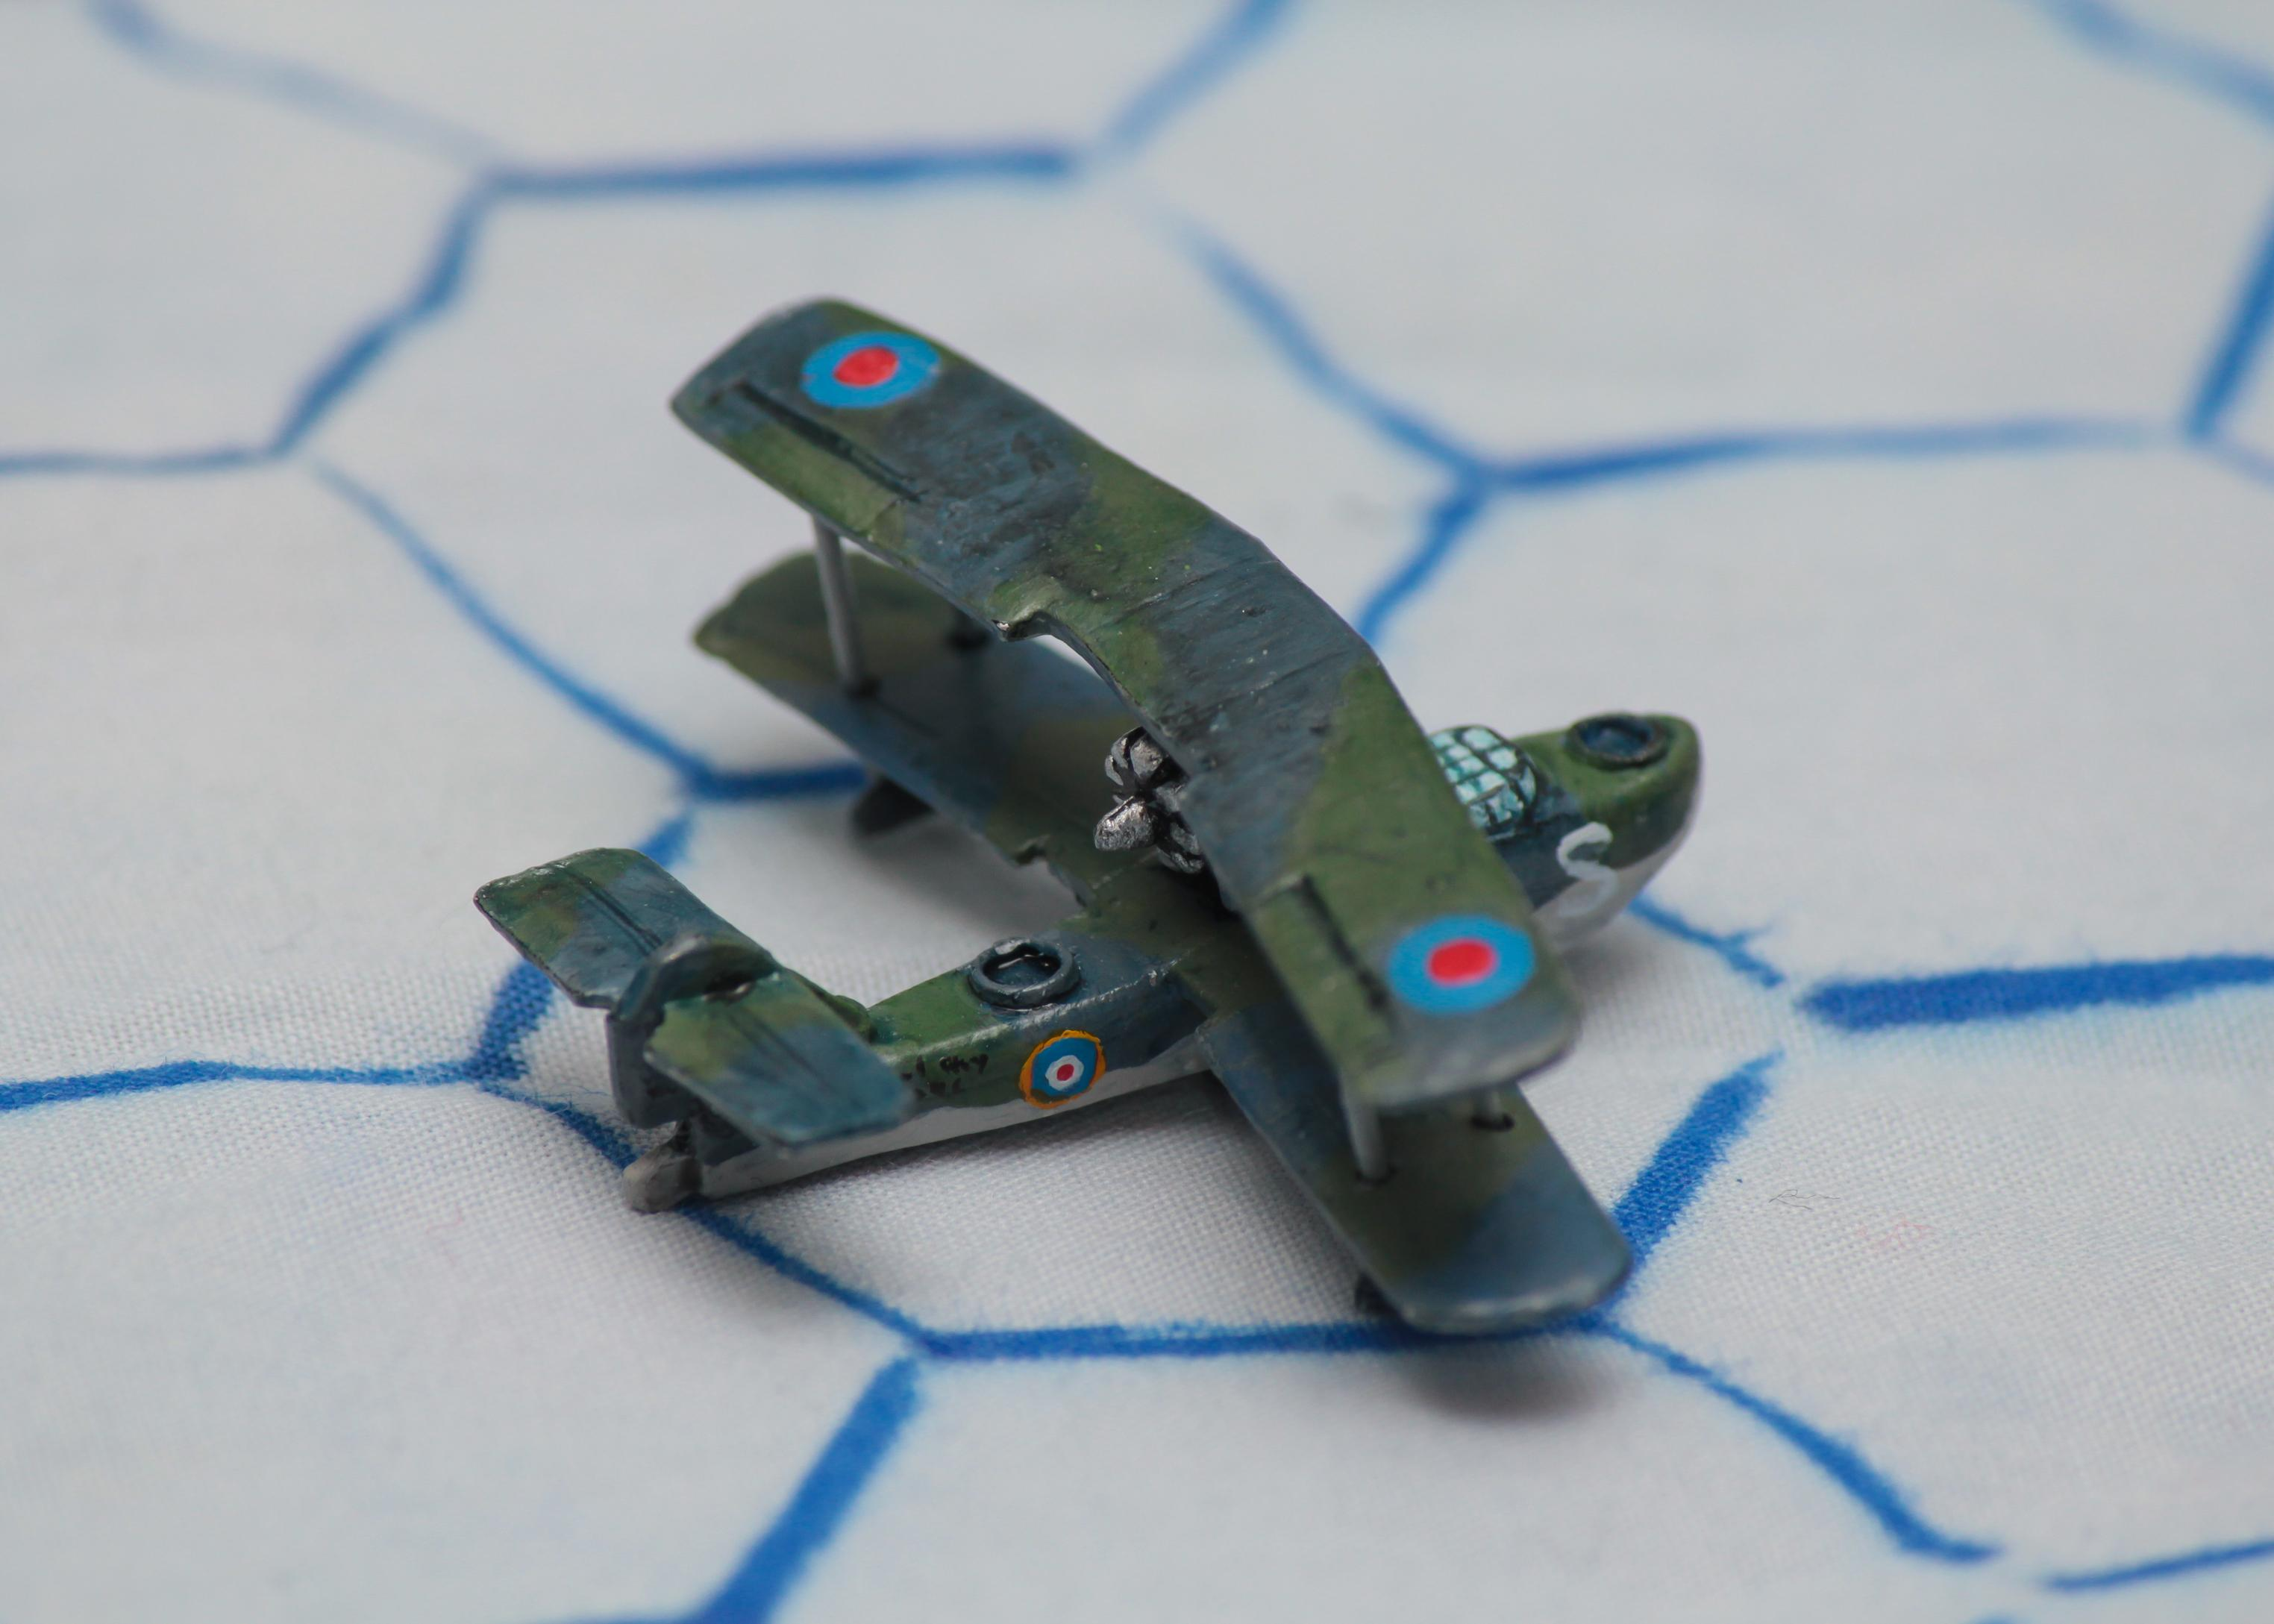 1:300 Scale, 6mm Scale, Air, Air Combat, Aircraft, Aviation, Finland, Fliers, French, Germans, Historical, Imperial Japan, Italian, Luftwaffe, Planes, Raf, Republic Of China, Soviet, Usaaf, World War 2